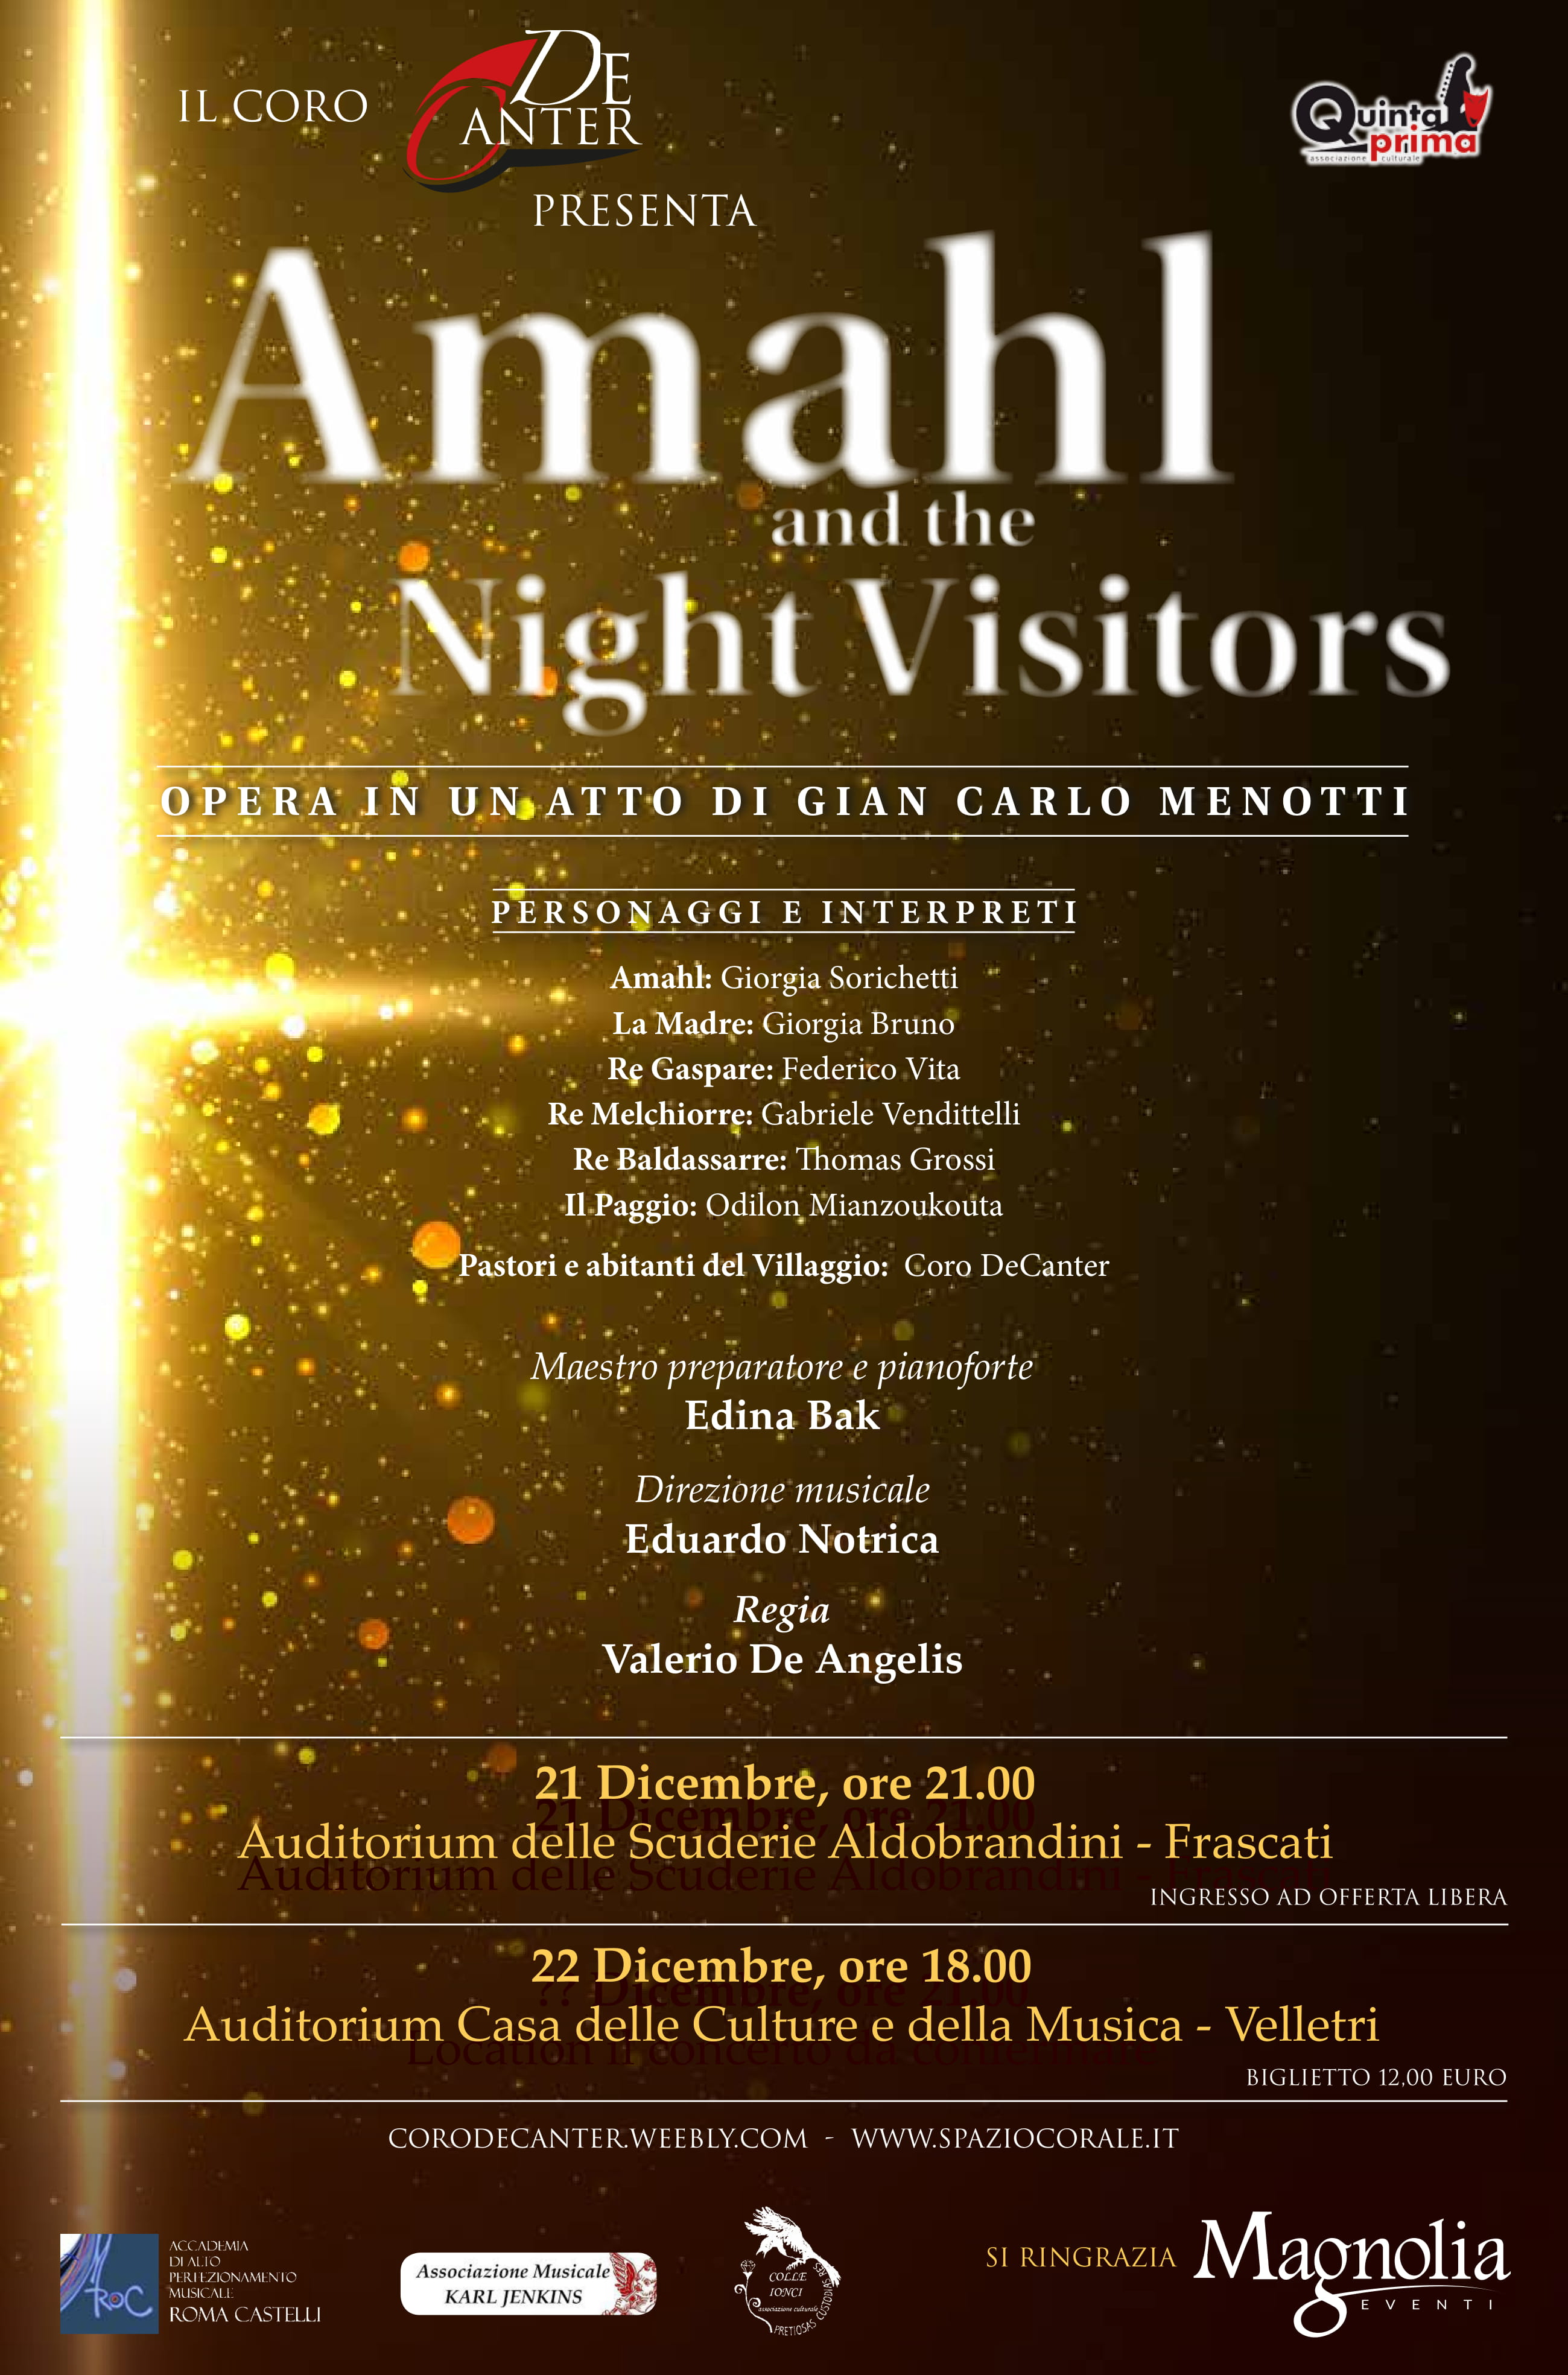 Amahl and the night visitors, coro Decanter